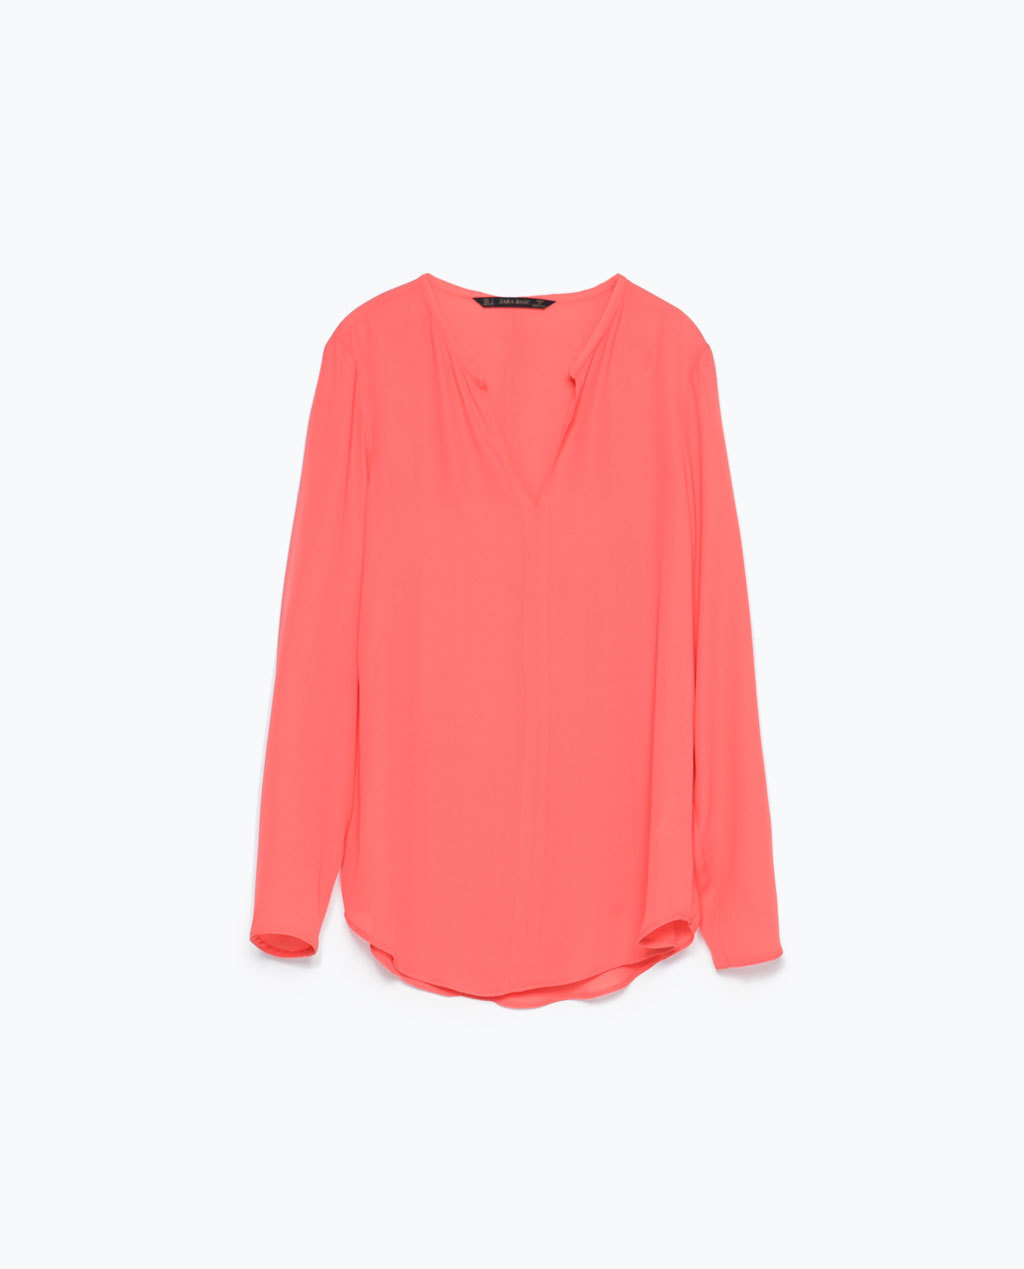 Shirt With Piped Neckline - pattern: plain; length: below the bottom; style: shirt; predominant colour: coral; occasions: casual, creative work; neckline: collarstand & mandarin with v-neck; fibres: polyester/polyamide - 100%; fit: straight cut; sleeve length: long sleeve; sleeve style: standard; pattern type: fabric; texture group: other - light to midweight; season: s/s 2015; wardrobe: highlight